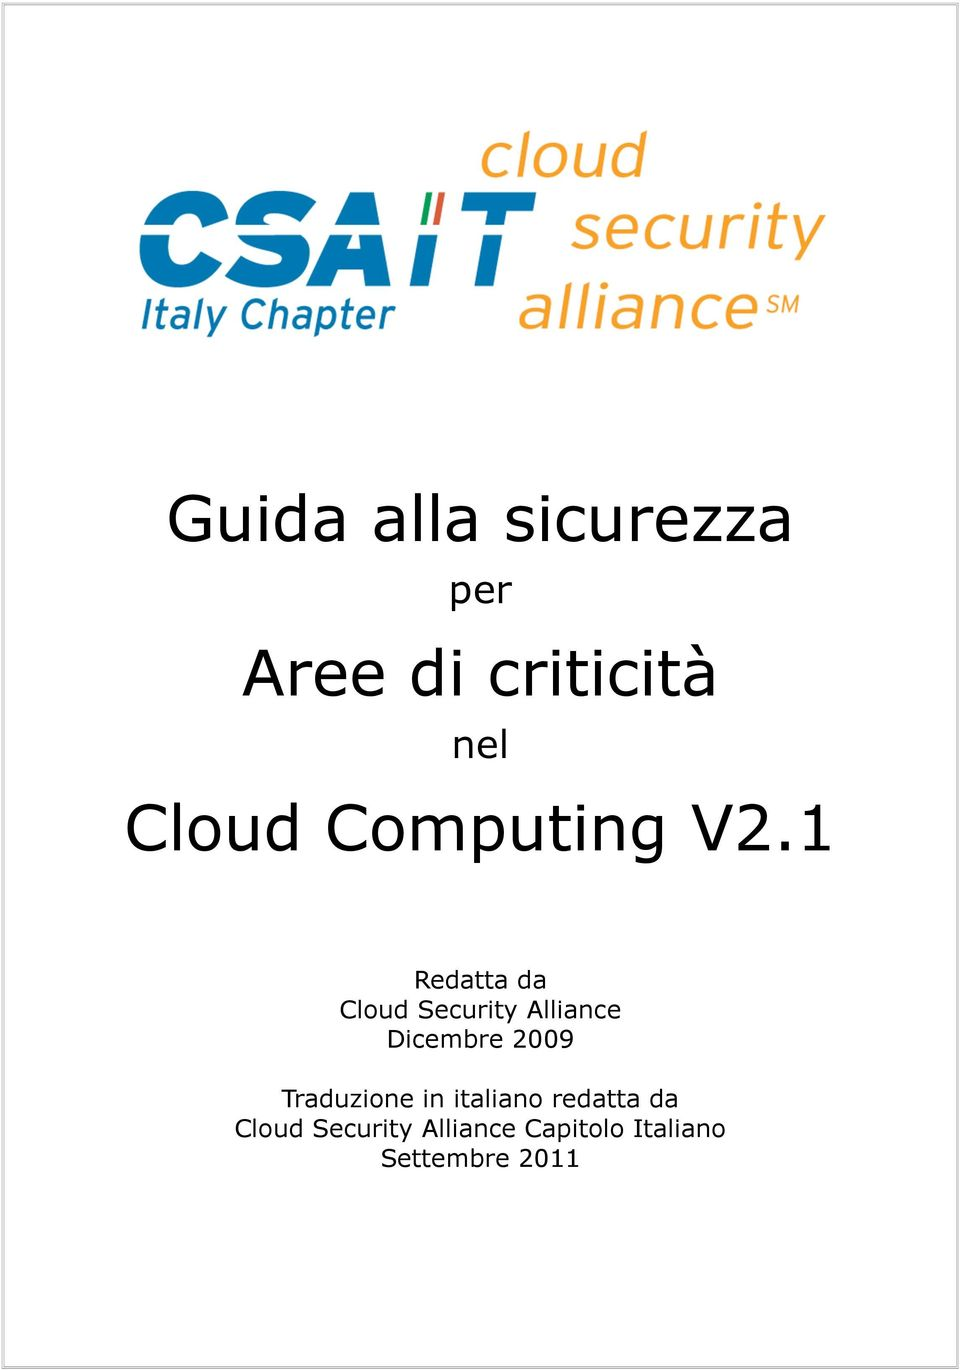 1 Redatta da Cloud Security Alliance Dicembre 2009